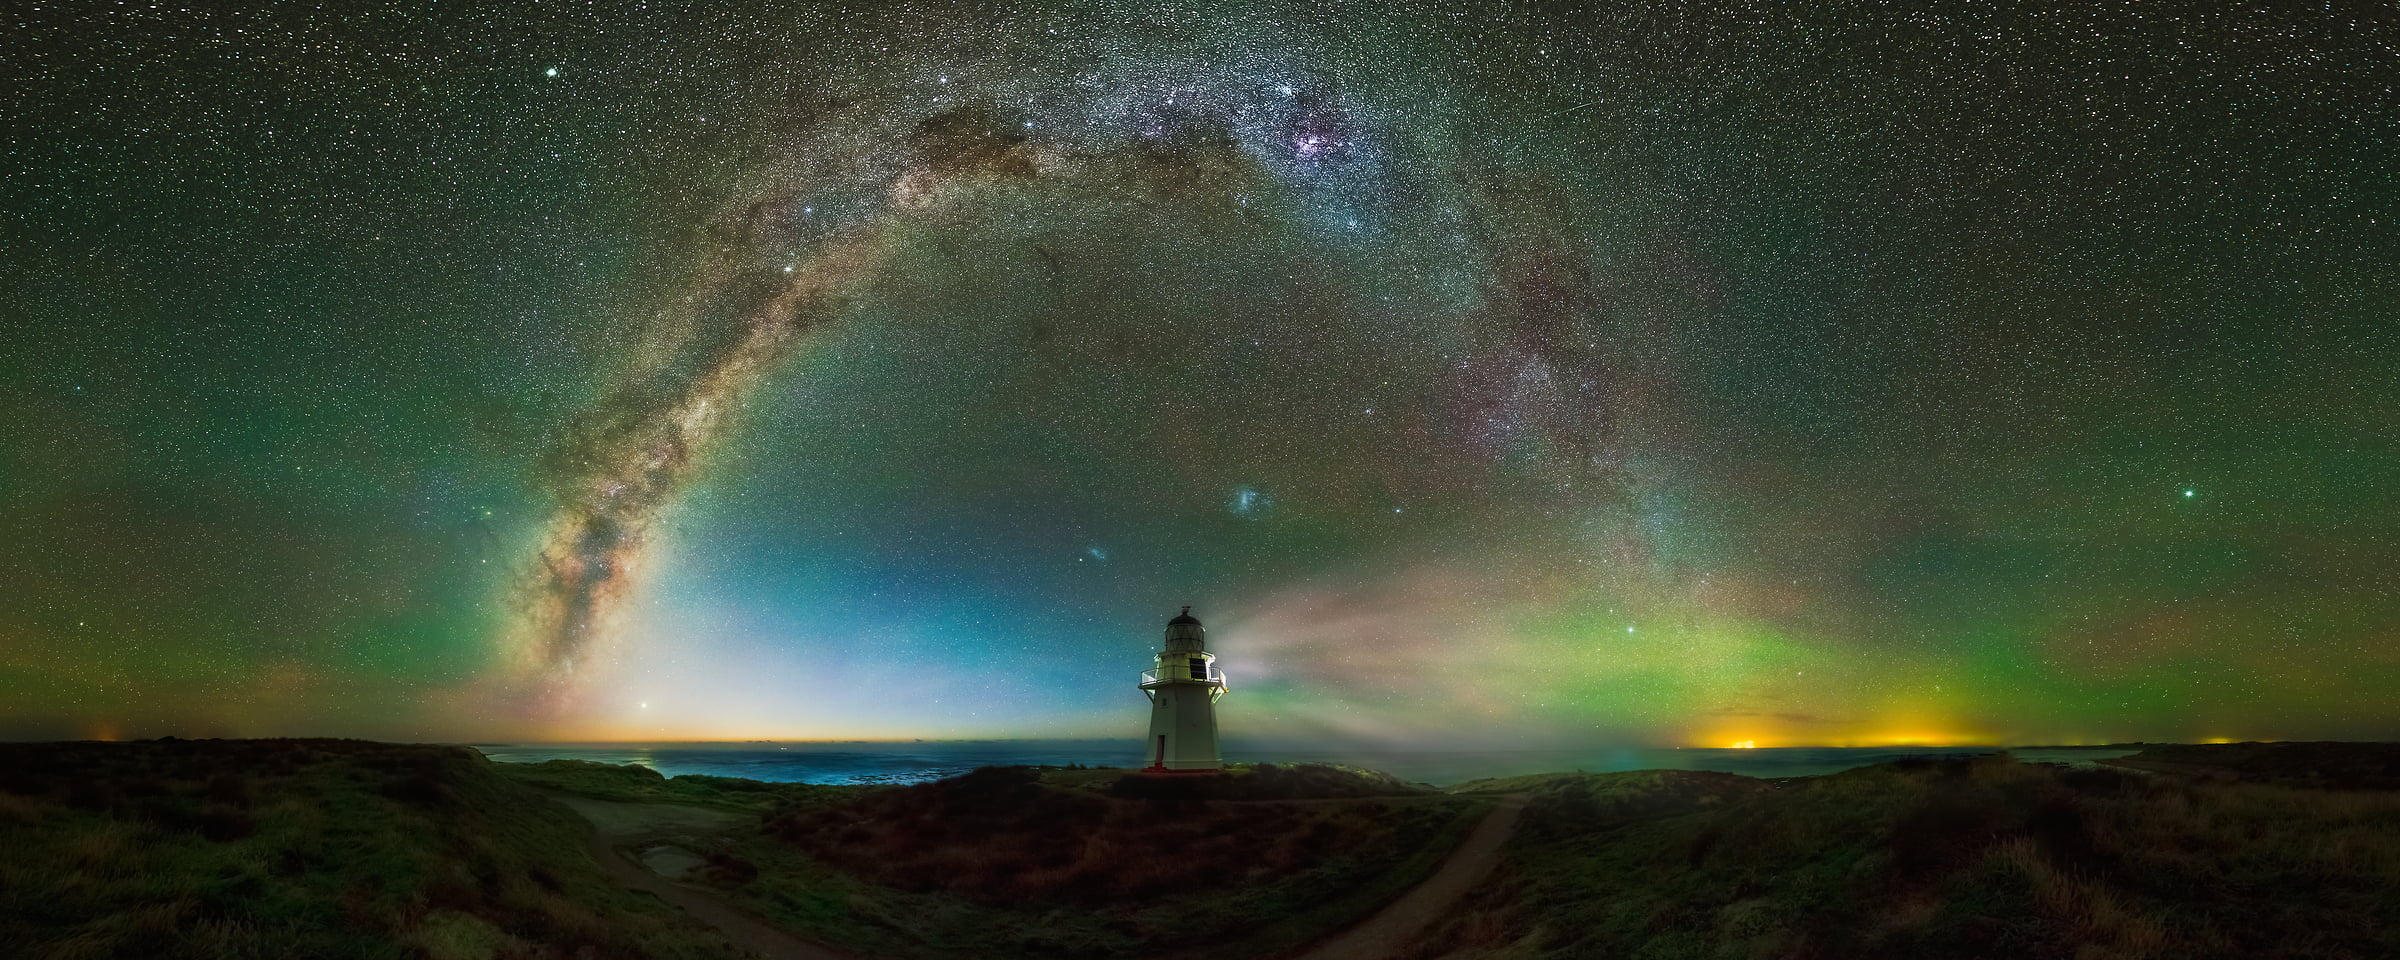 160 megapixels! A very high resolution, large-format VAST photo print of the night sky, milky way, and stars over a lighthouse; fine art astrophotography landscape photo created by Paul Wilson in Waipapa Point Lighthouse, Southland, New Zealand